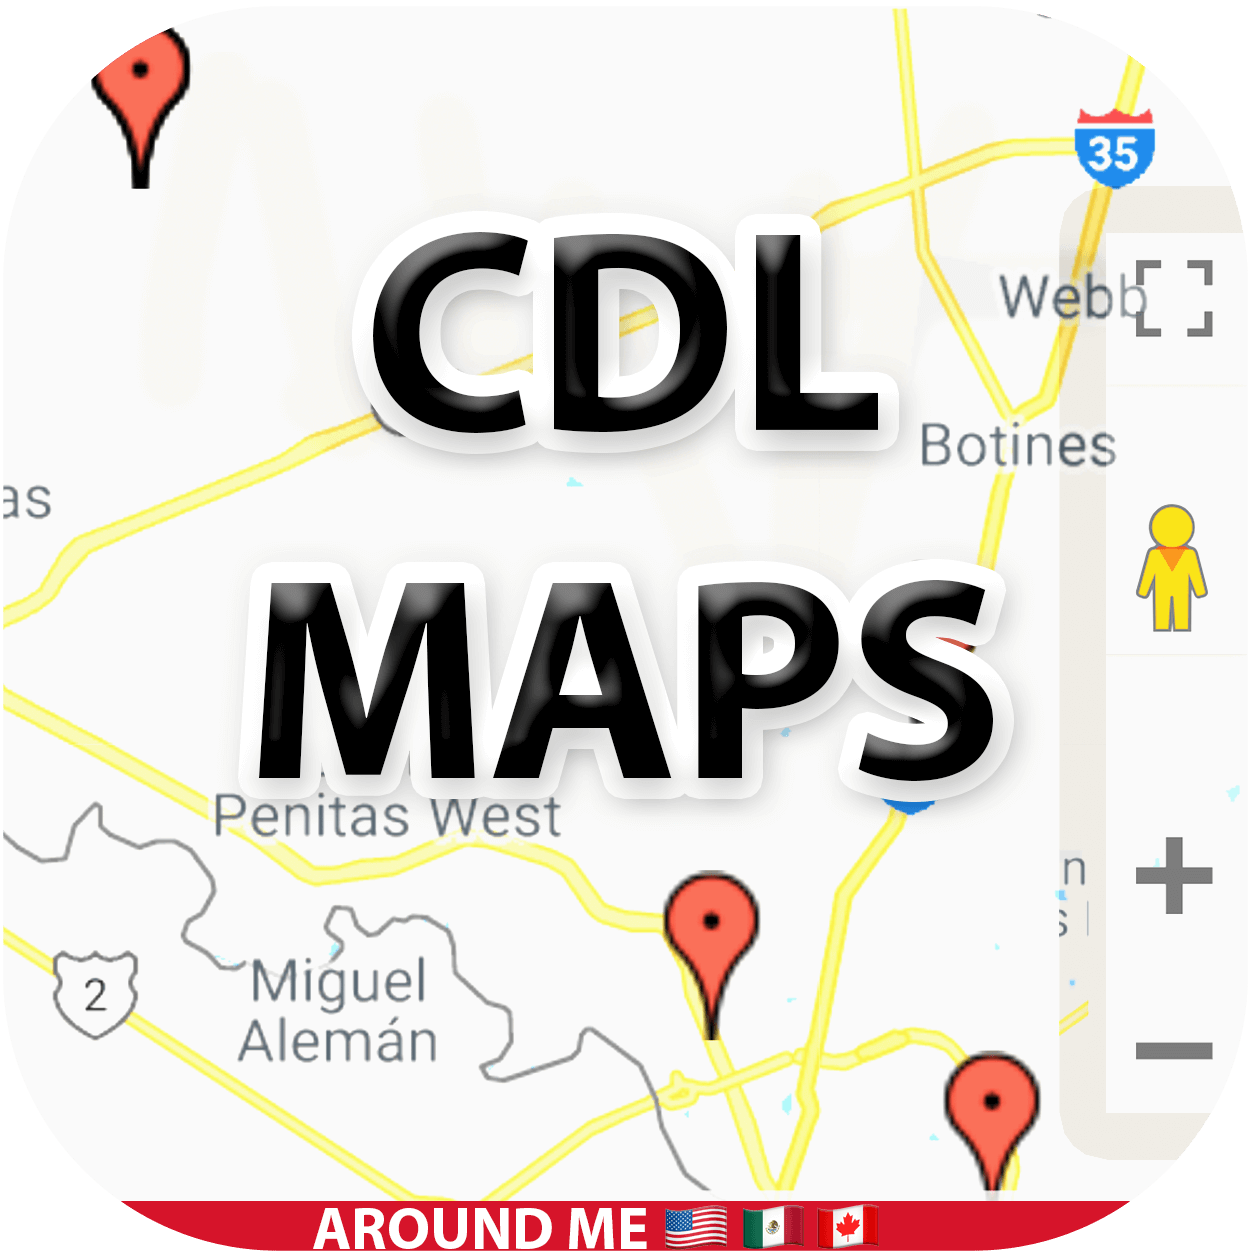 cdl maps.png